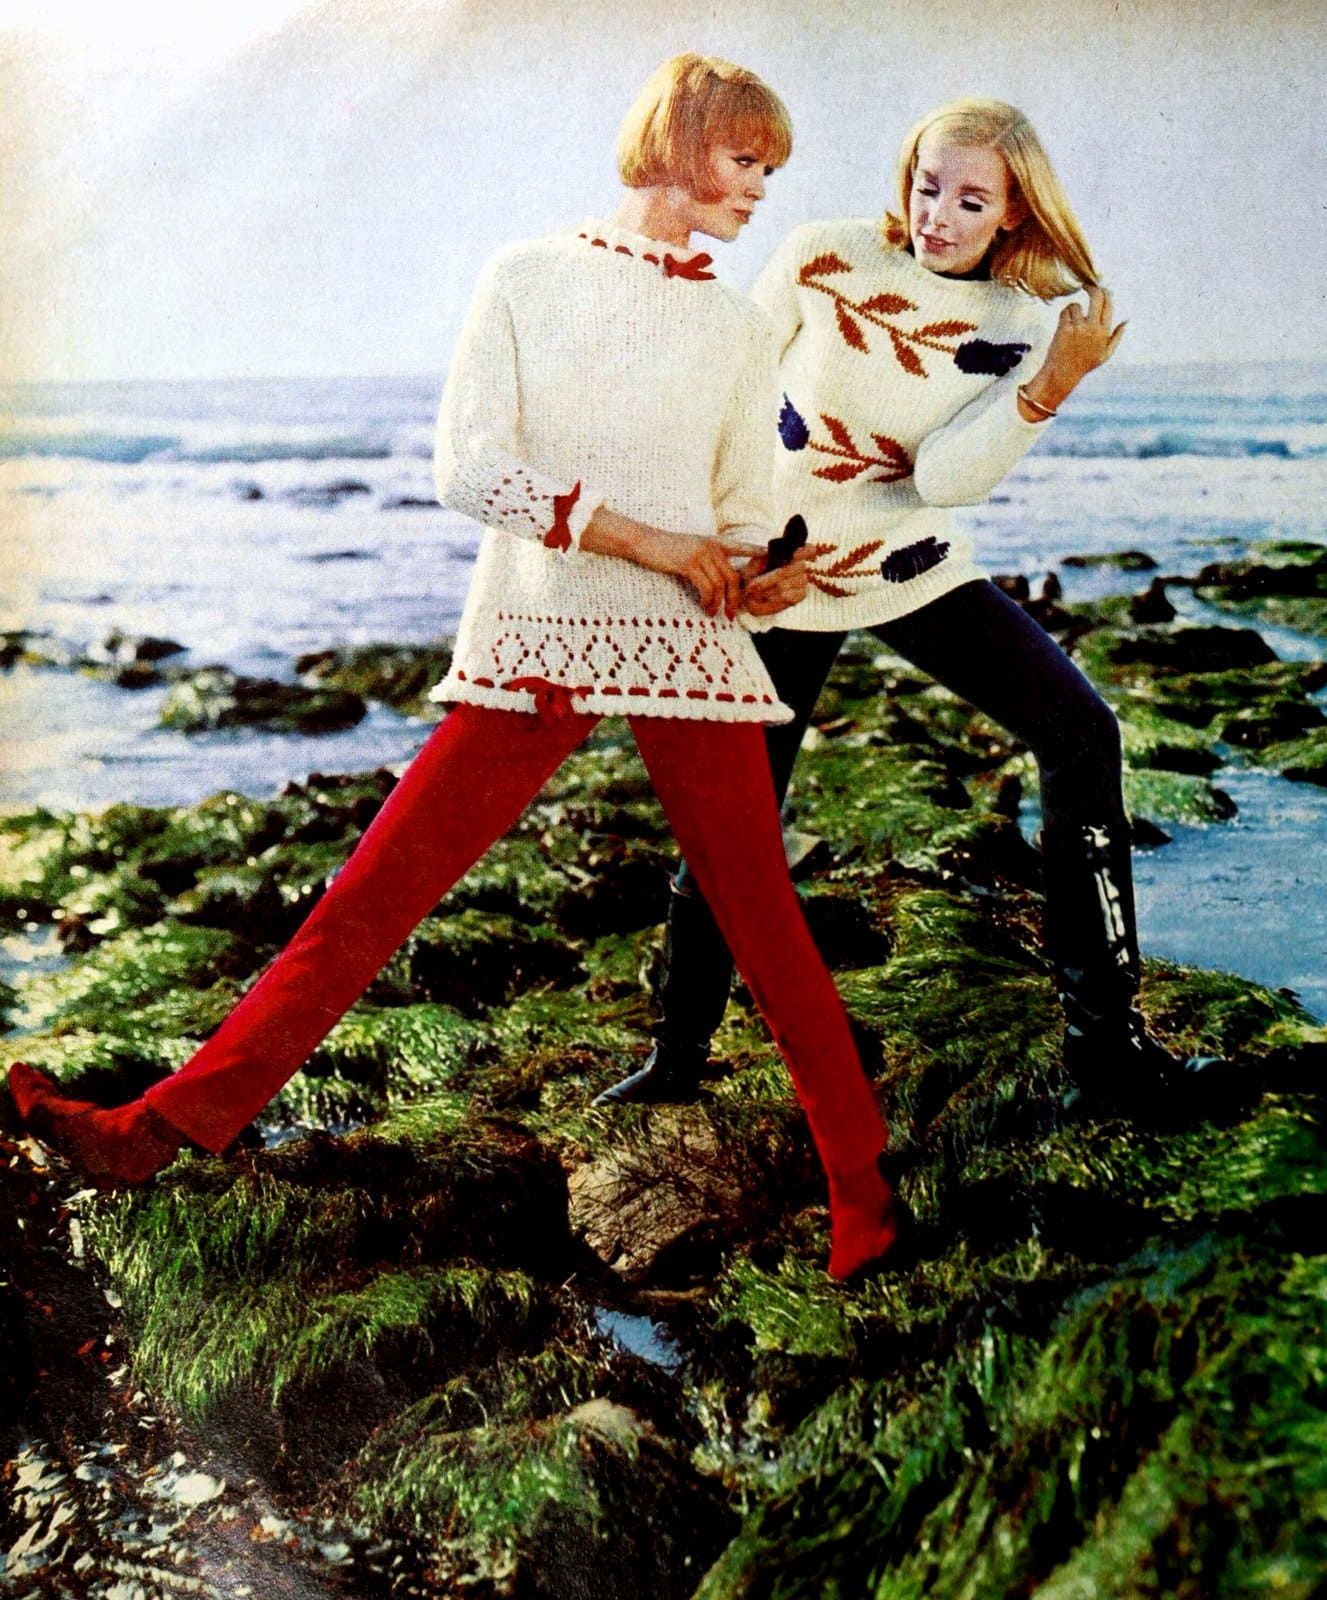 Catalina fashions for women from the sixties (1965)